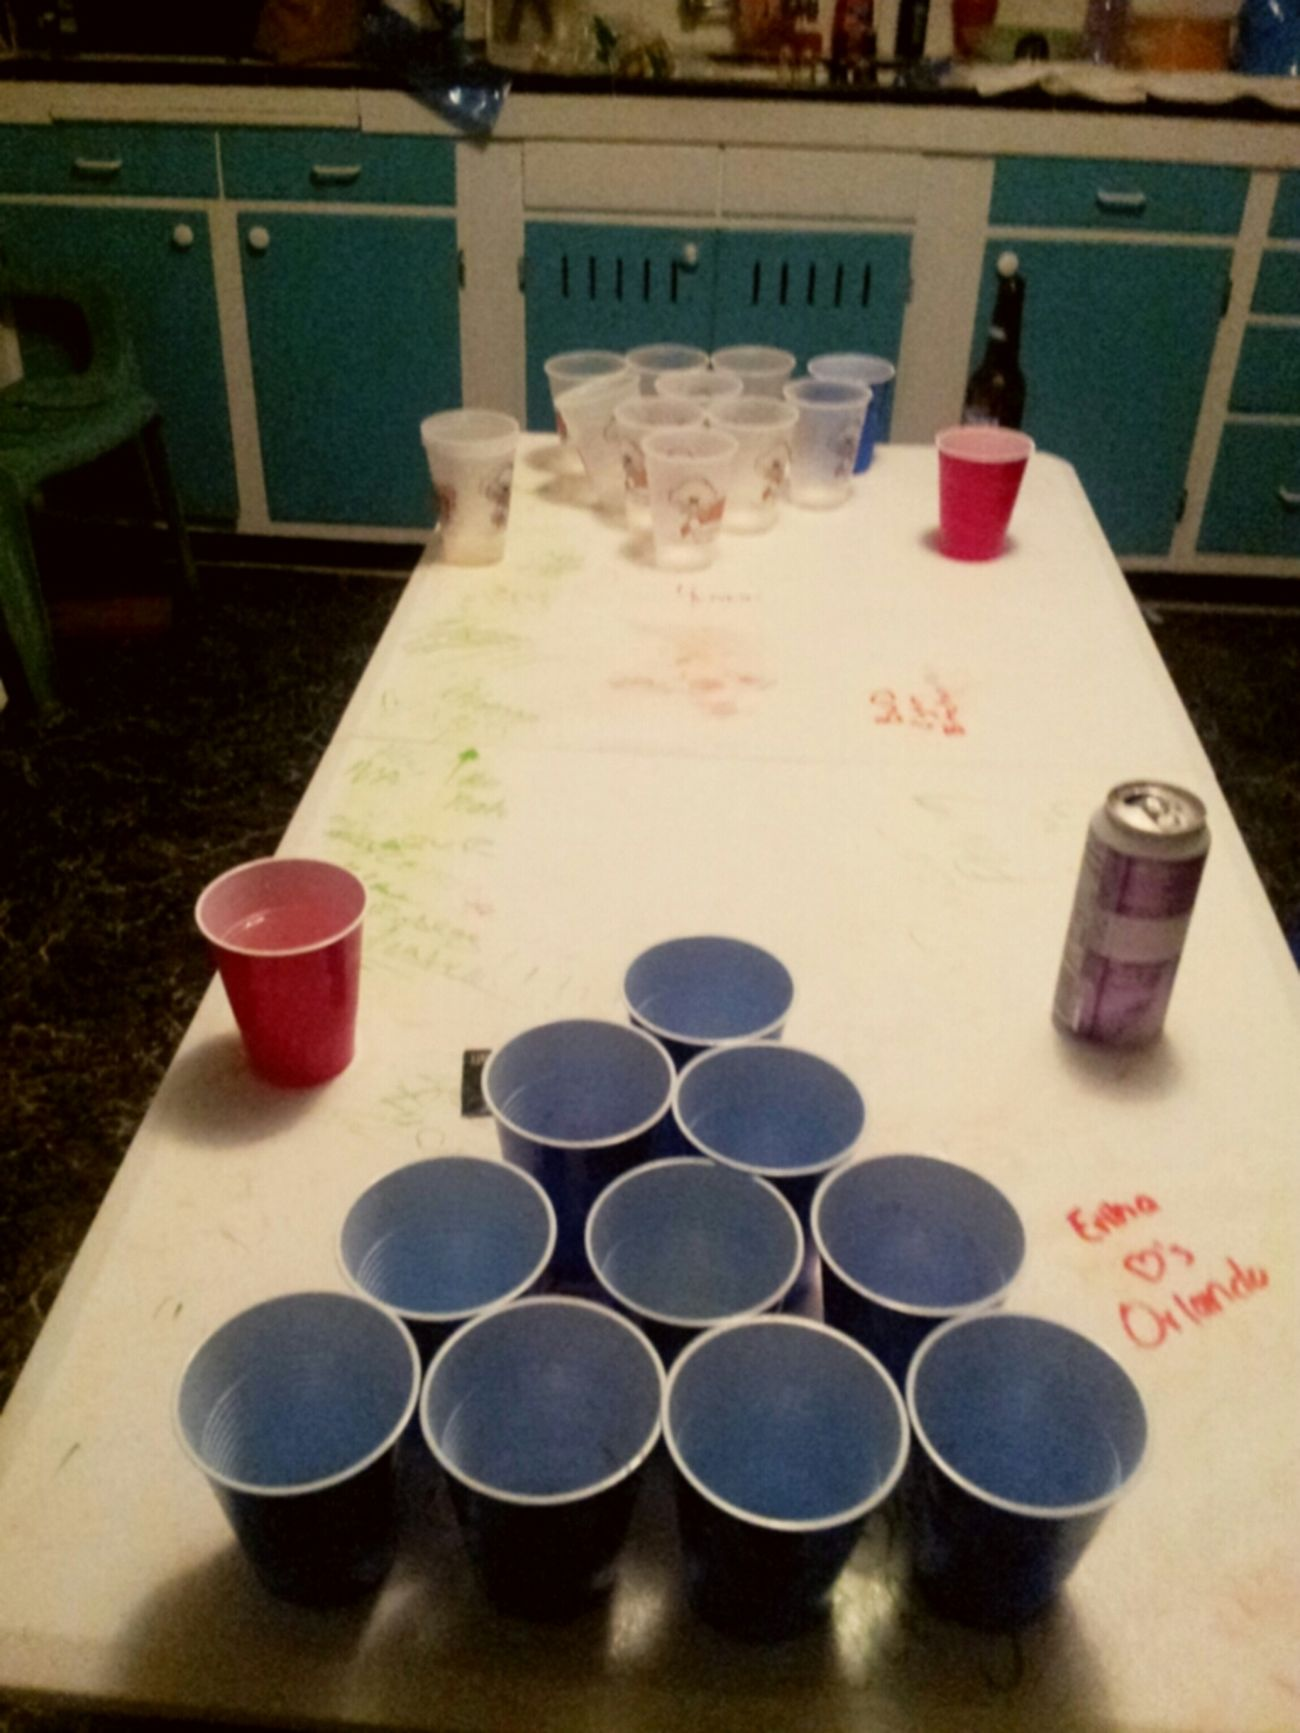 Last Night #BearPong #FunTime